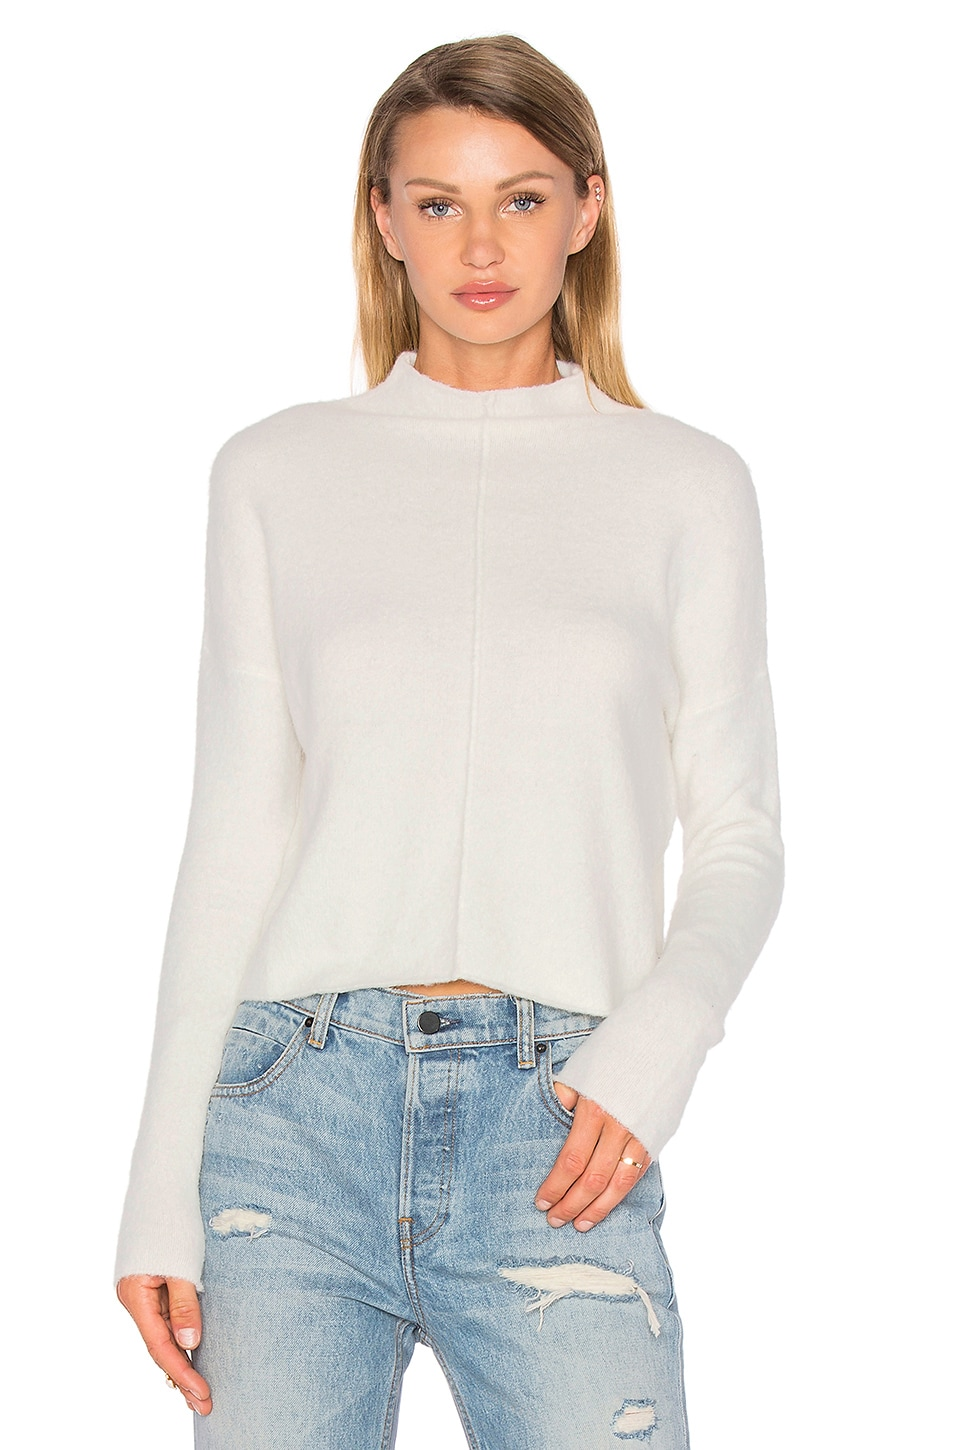 Line Eva Mock Neck Sweater in Whitecap